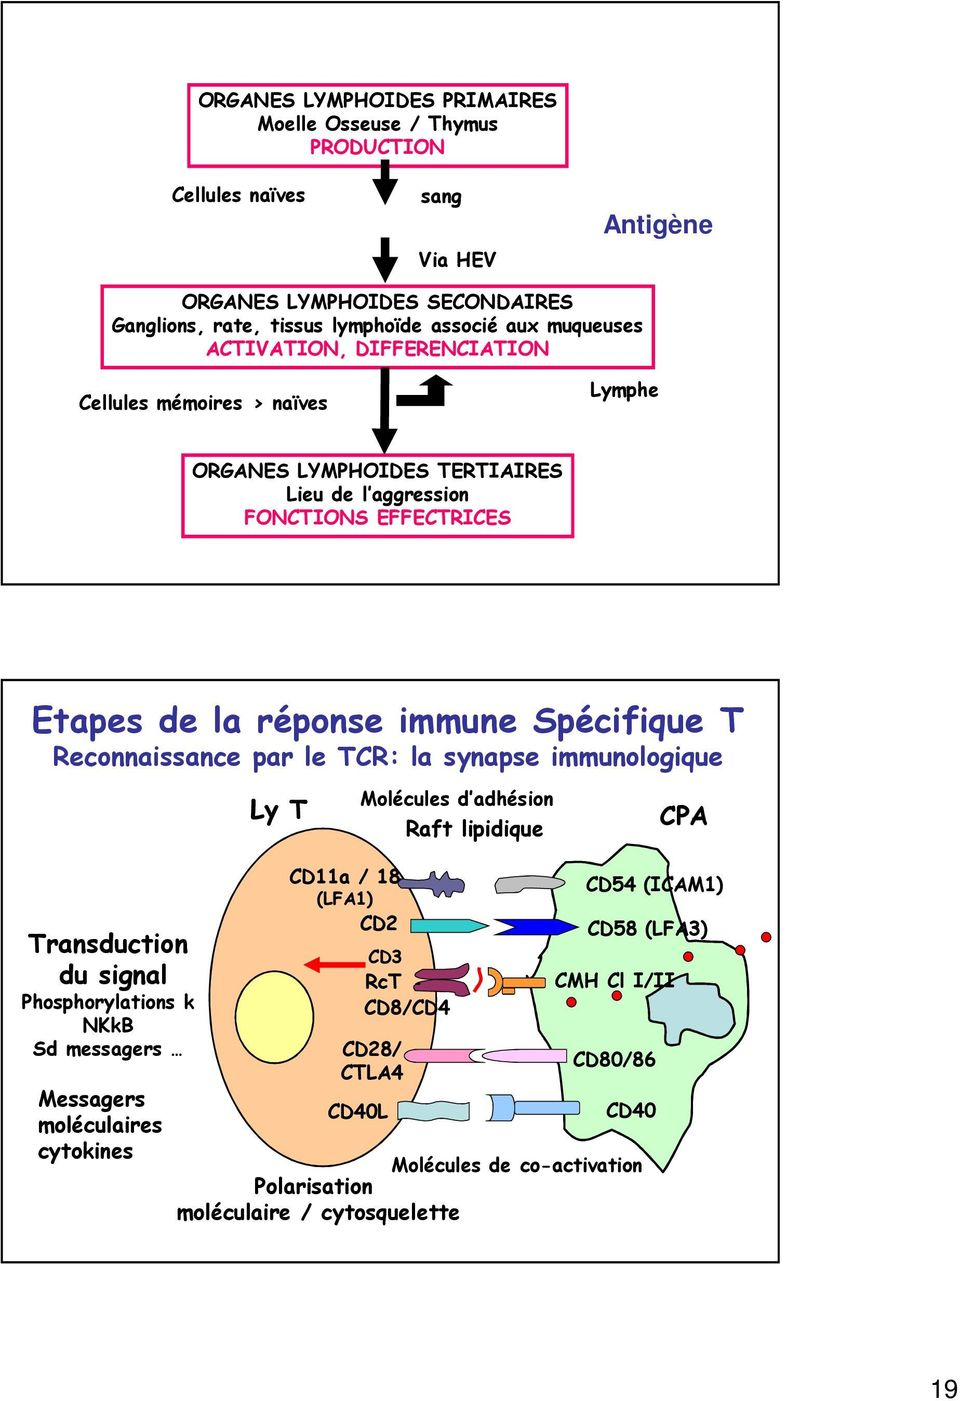 Spécifique T Reconnaissance par le TCR: la synapse immunologique Ly T Molécules d adhésion Raft lipidique CPA Transduction du signal Phosphorylations k NKkB Sd messagers Messagers